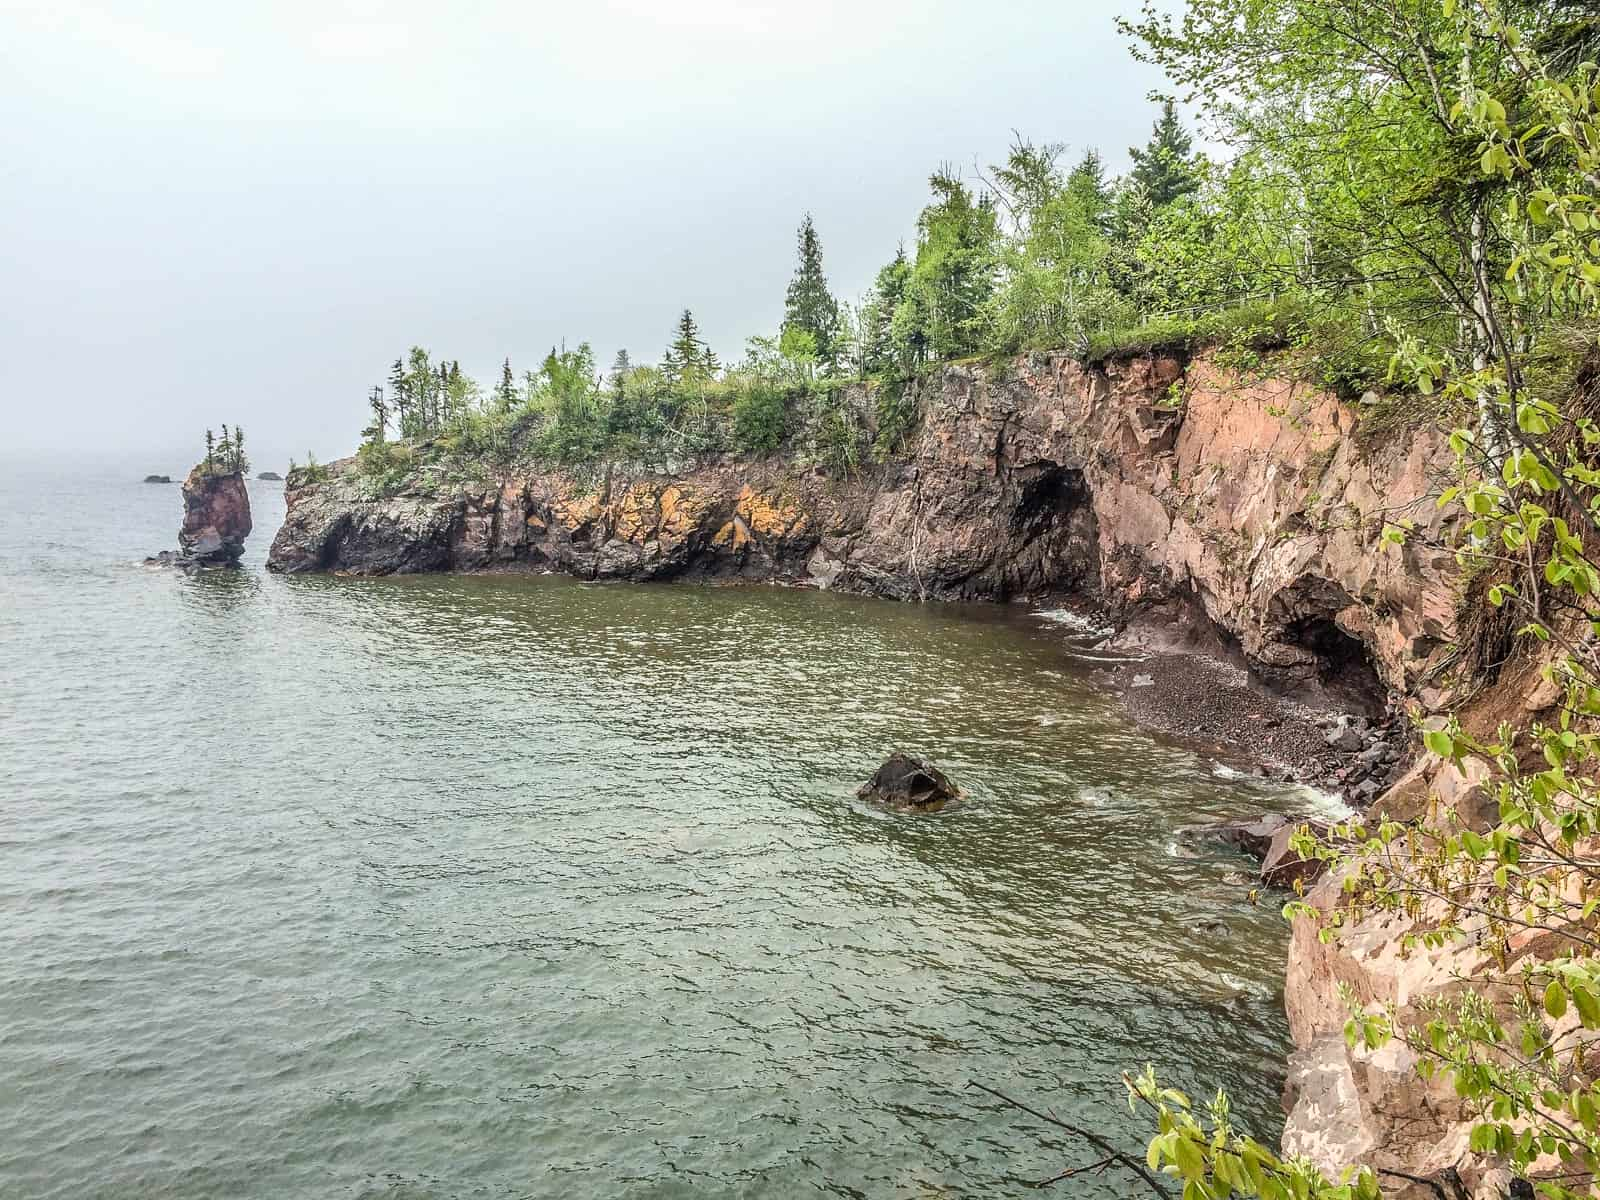 After the Sea Arch Fell at Tettegouche State Park